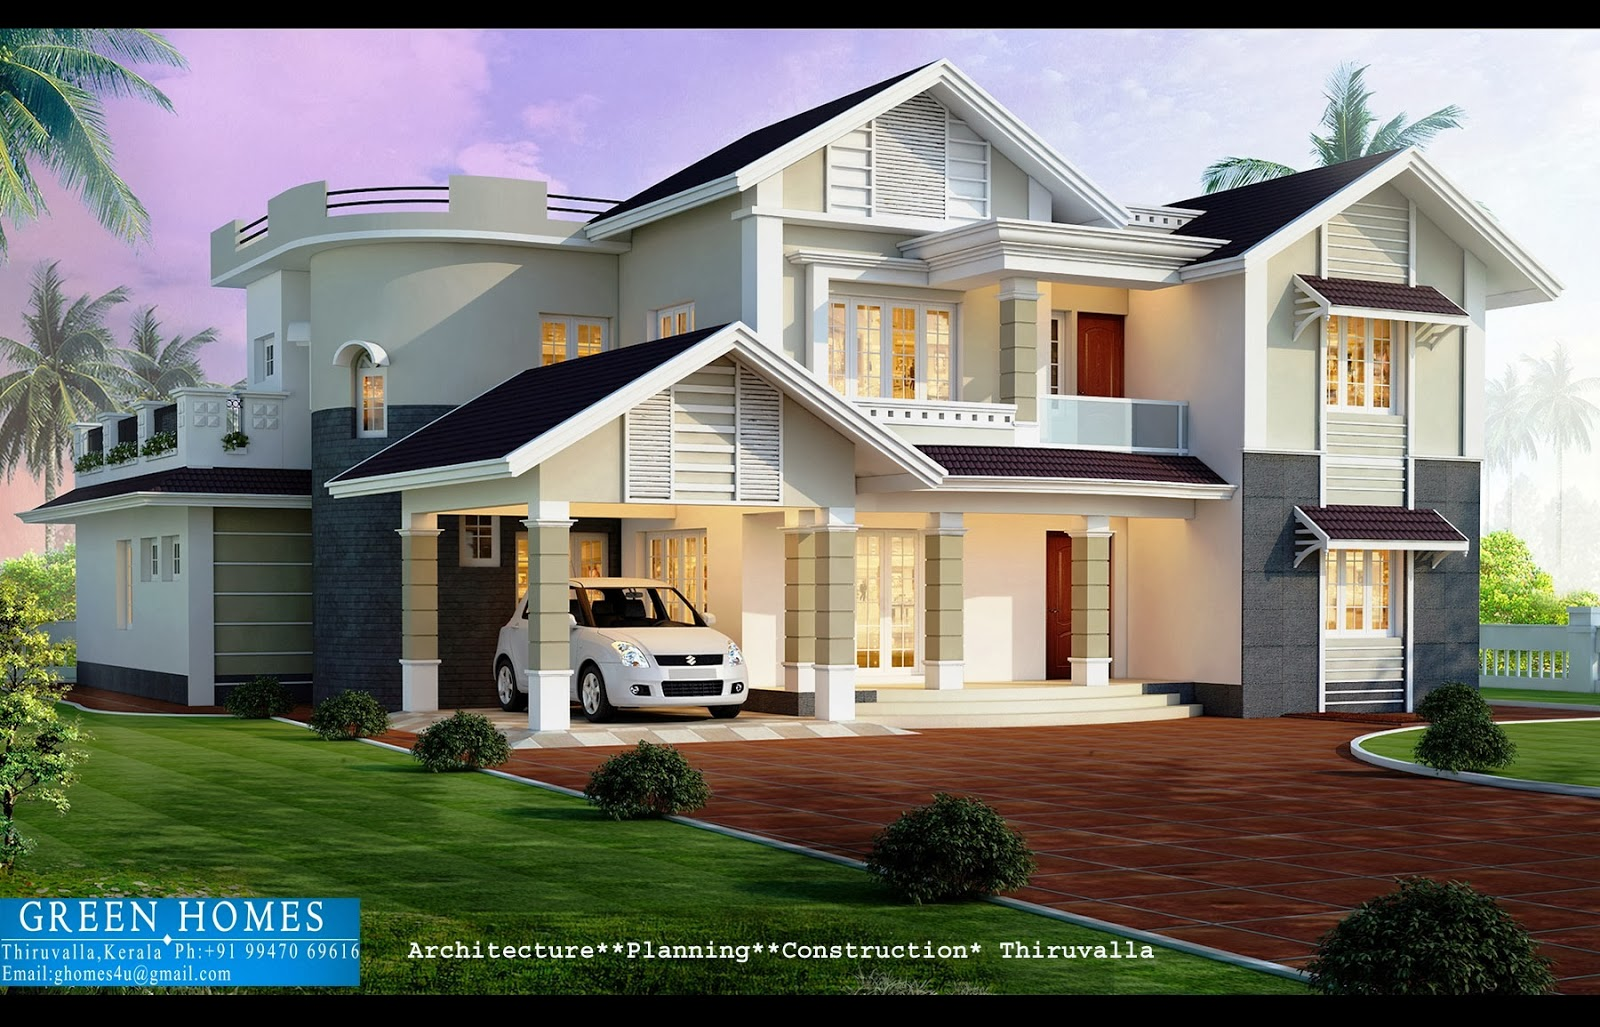 Green homes beautiful home design for Green home plans